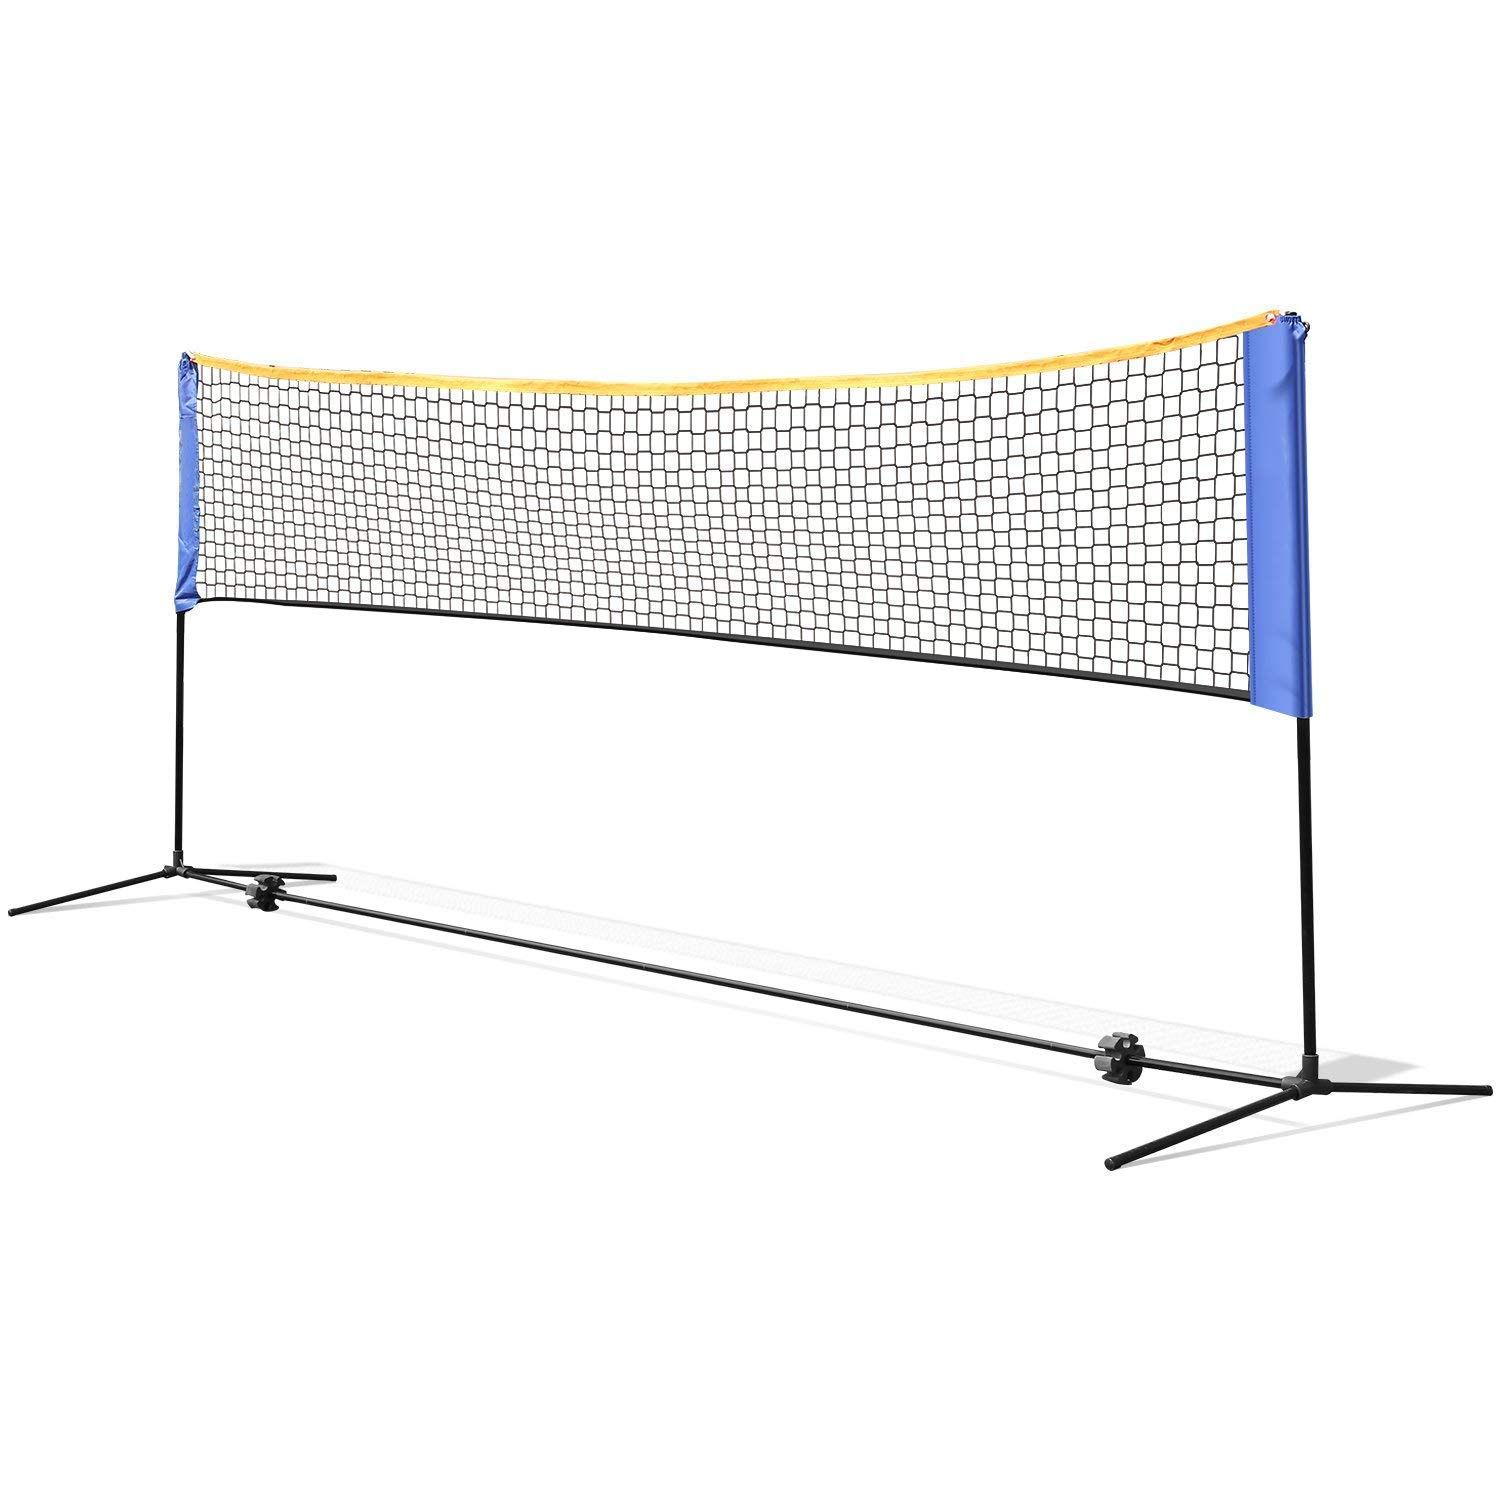 Femor Portable Badminton Tennis Net 13 Ft Net For Soccer Tennis Kids Volleyball Beach Ball Sports Net With Pole Tennis Nets Kids Volleyball Soccer Tennis